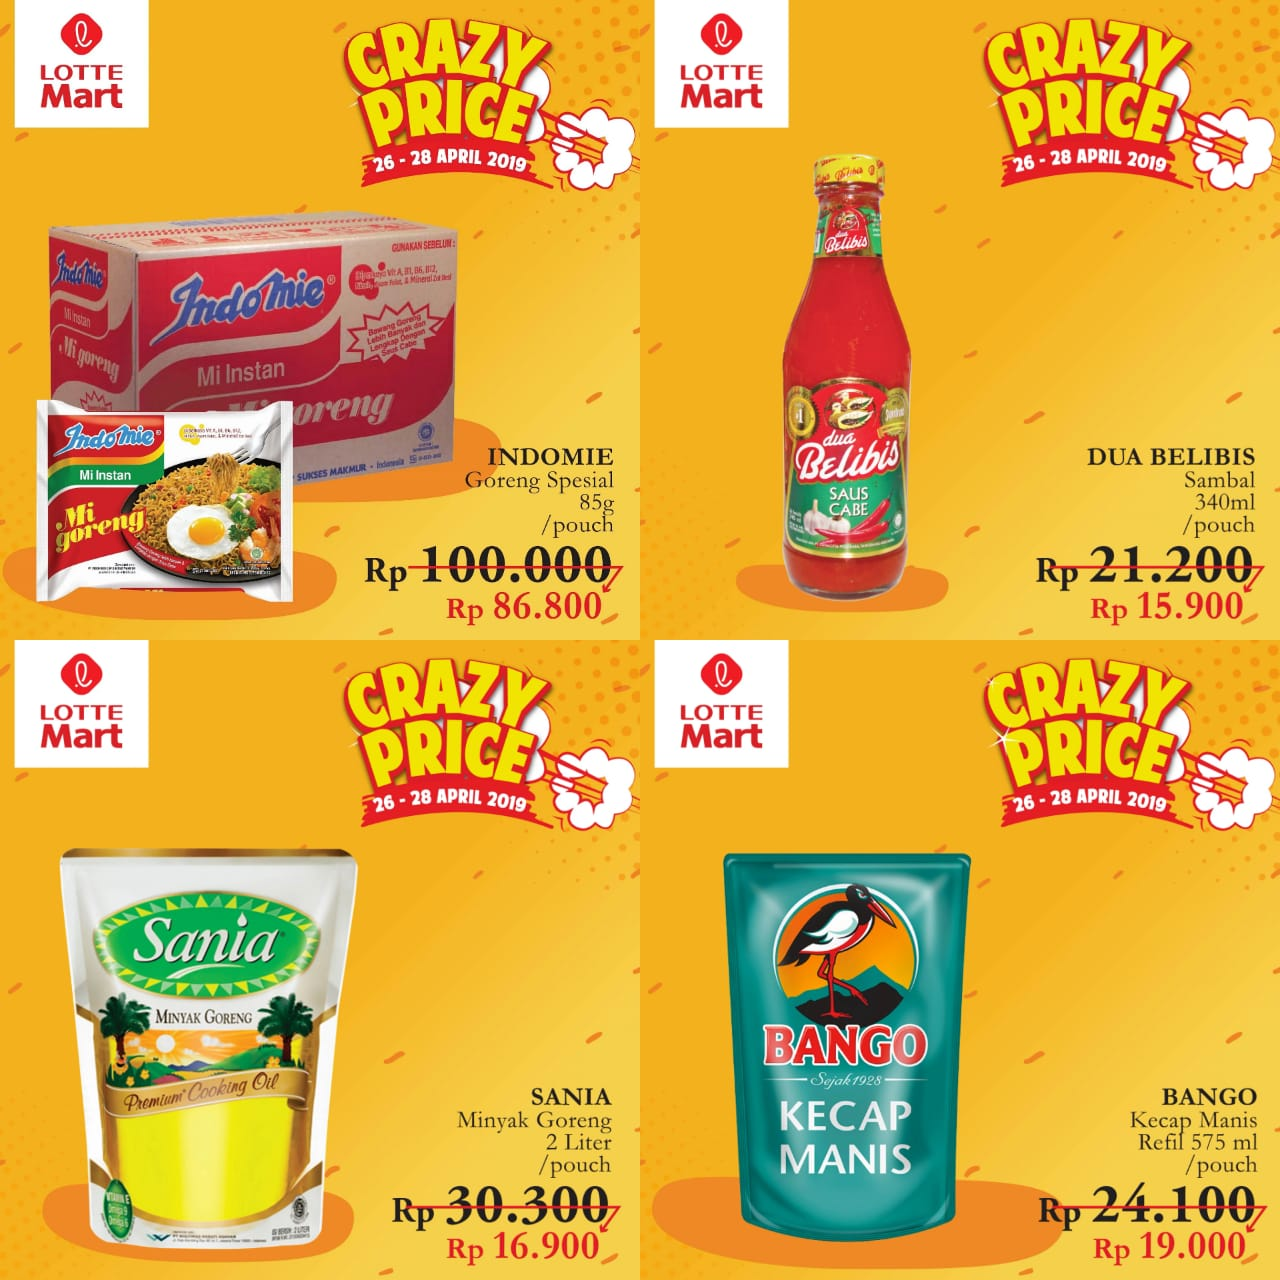 Katalog Promo Spesial GD+ Lottemart Periode 26-28 April 2019